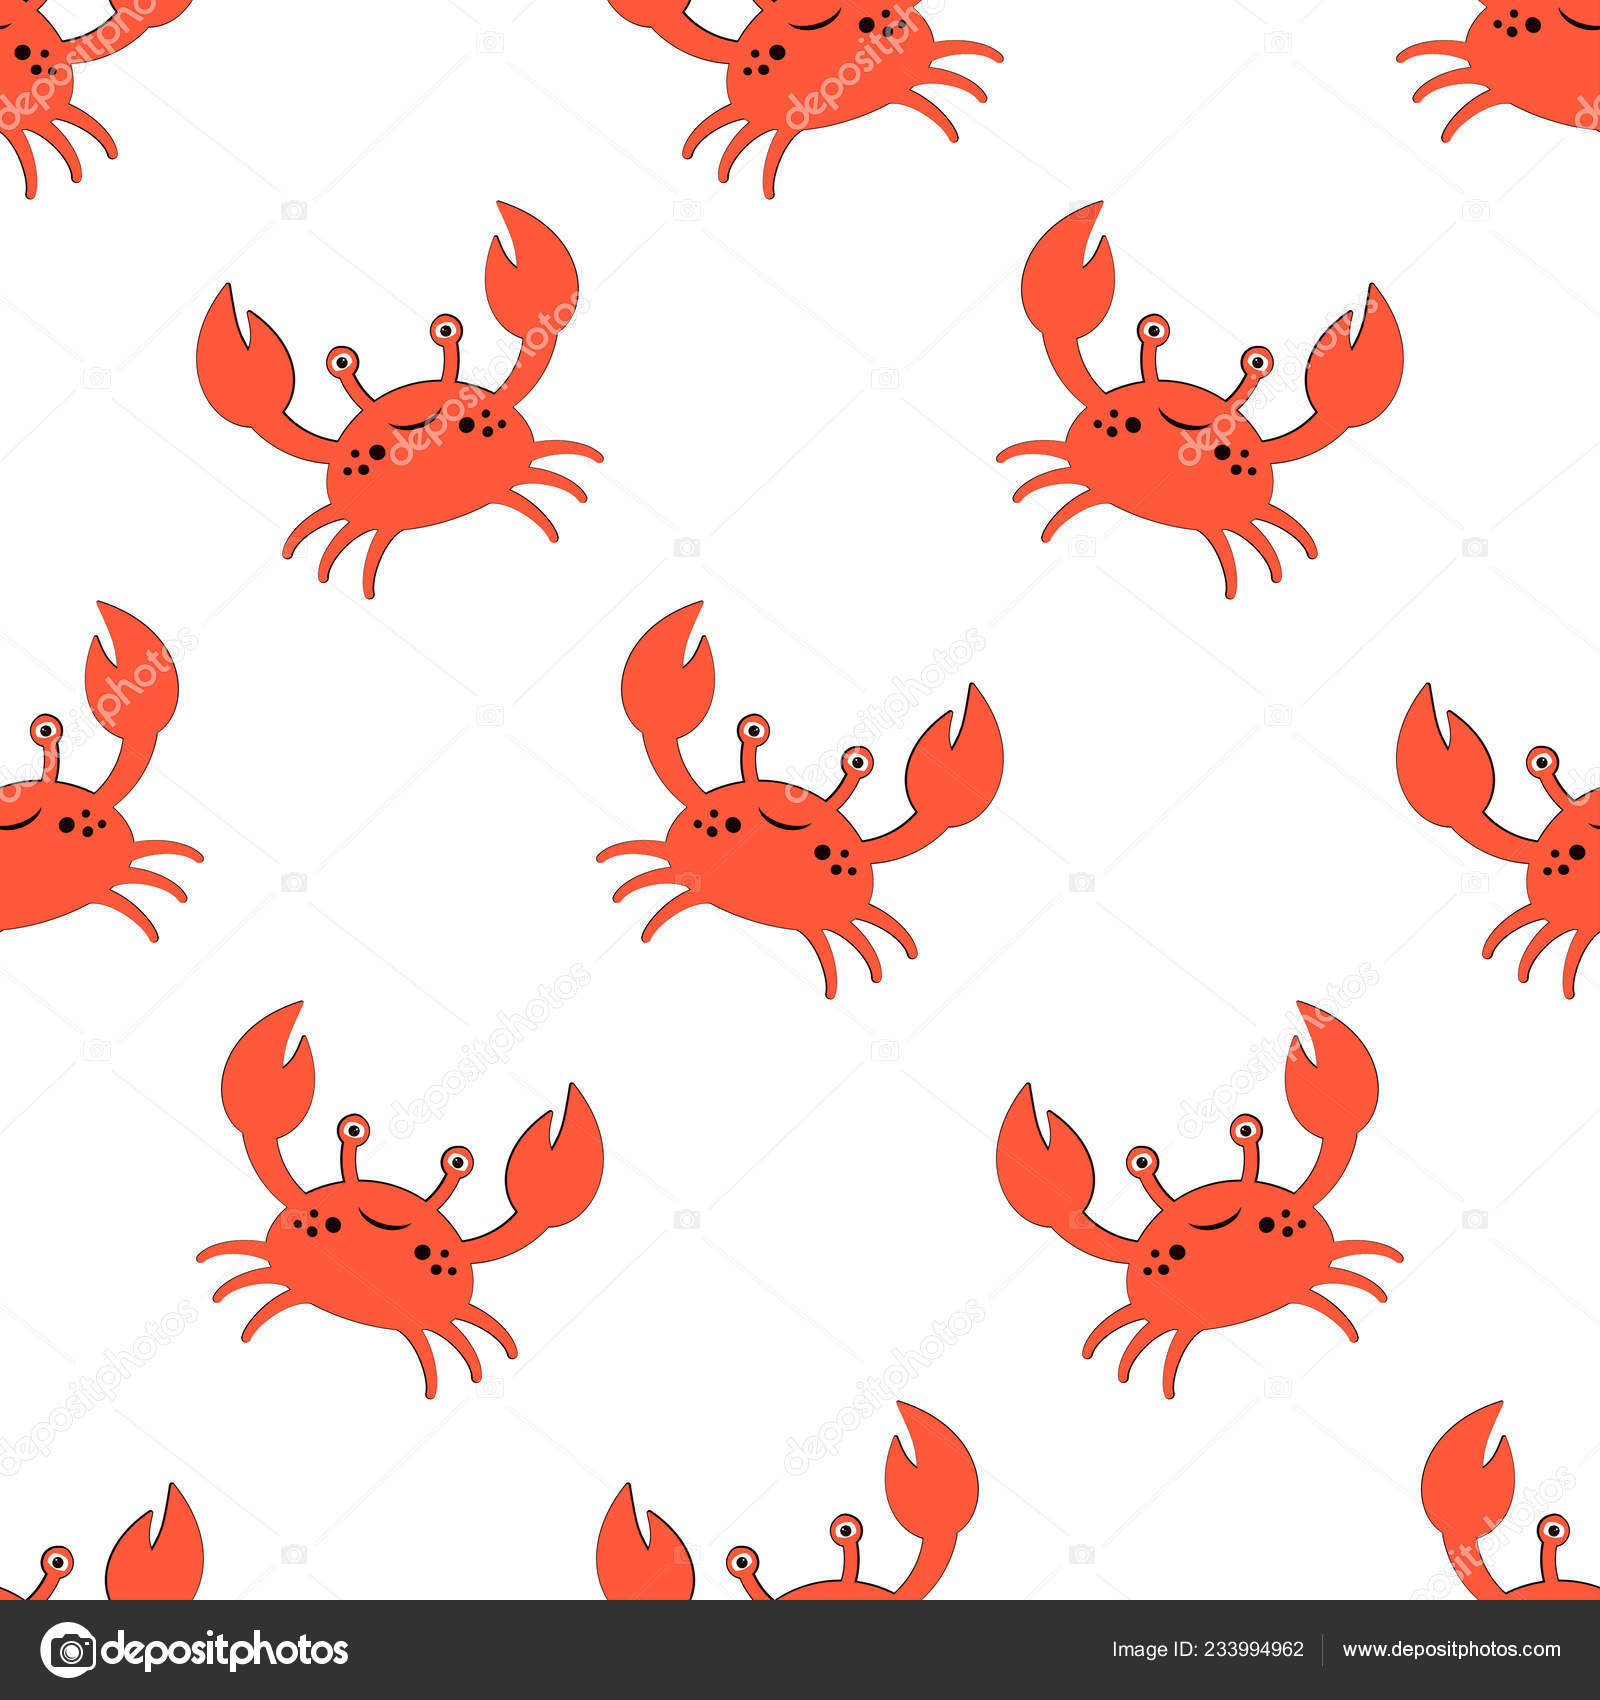 Cute Kids Pattern Girls Boys Colorful Crab Abstract Background Create Stock Vector C Makc76 233994962